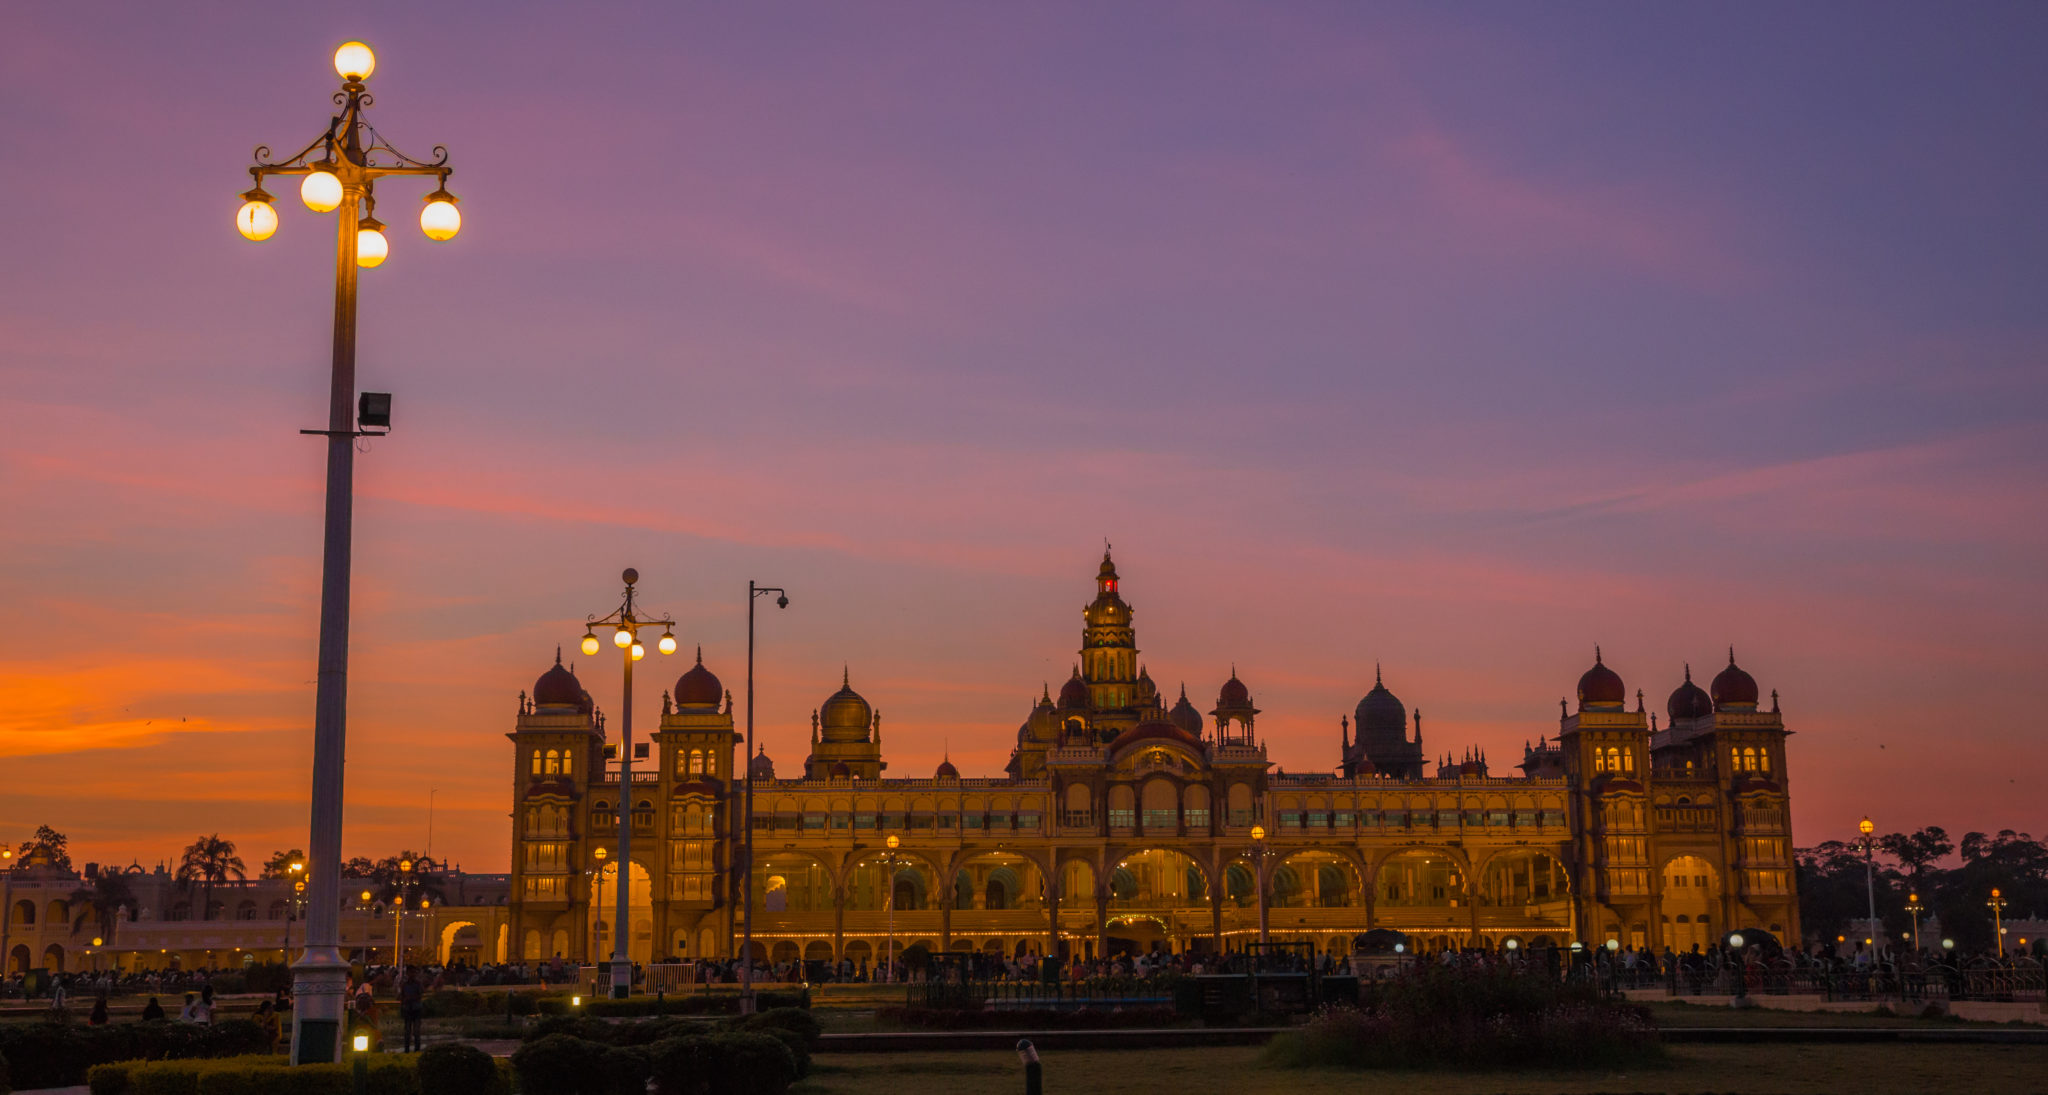 Mysore Palace at dusk